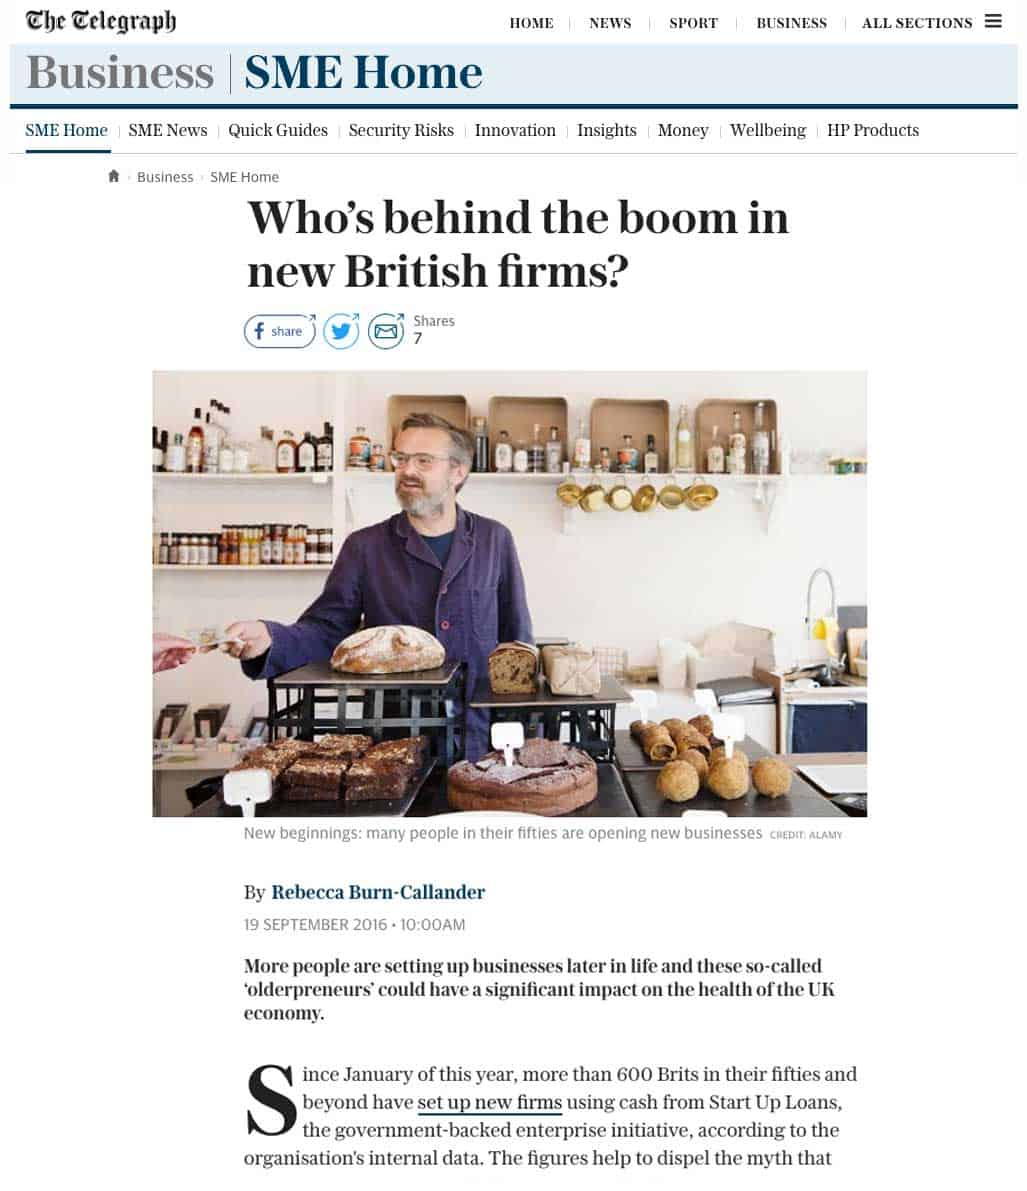 Who's behind the boom in new British firms?